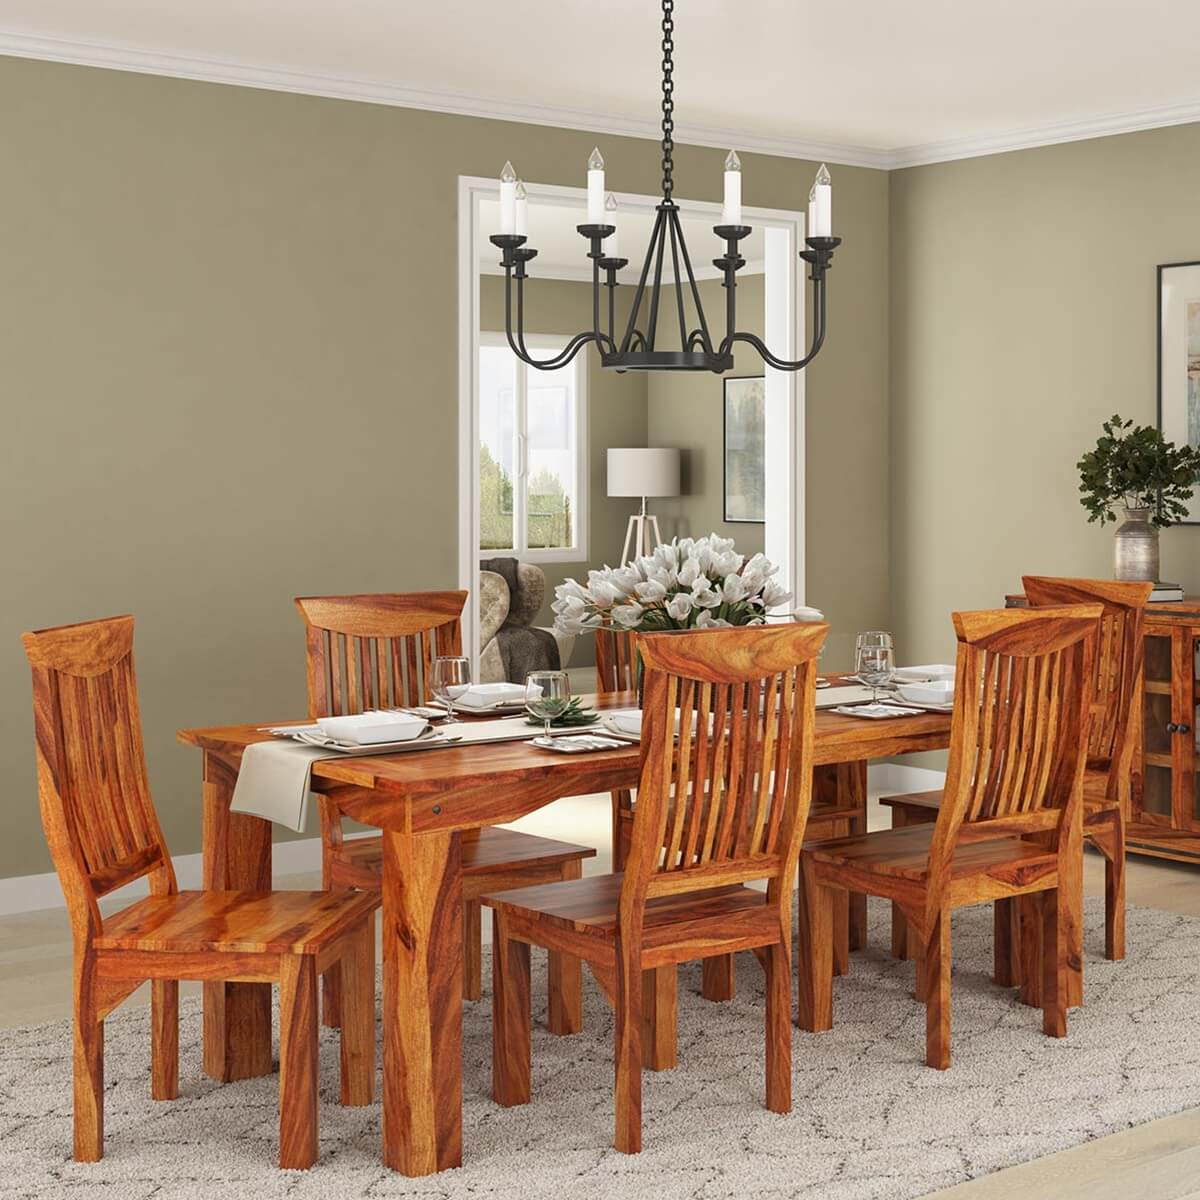 Idaho Modern Rustic Solid Wood Dining Table   Chair Set. Modern Rustic Solid Wood Dining Table   Chair Set